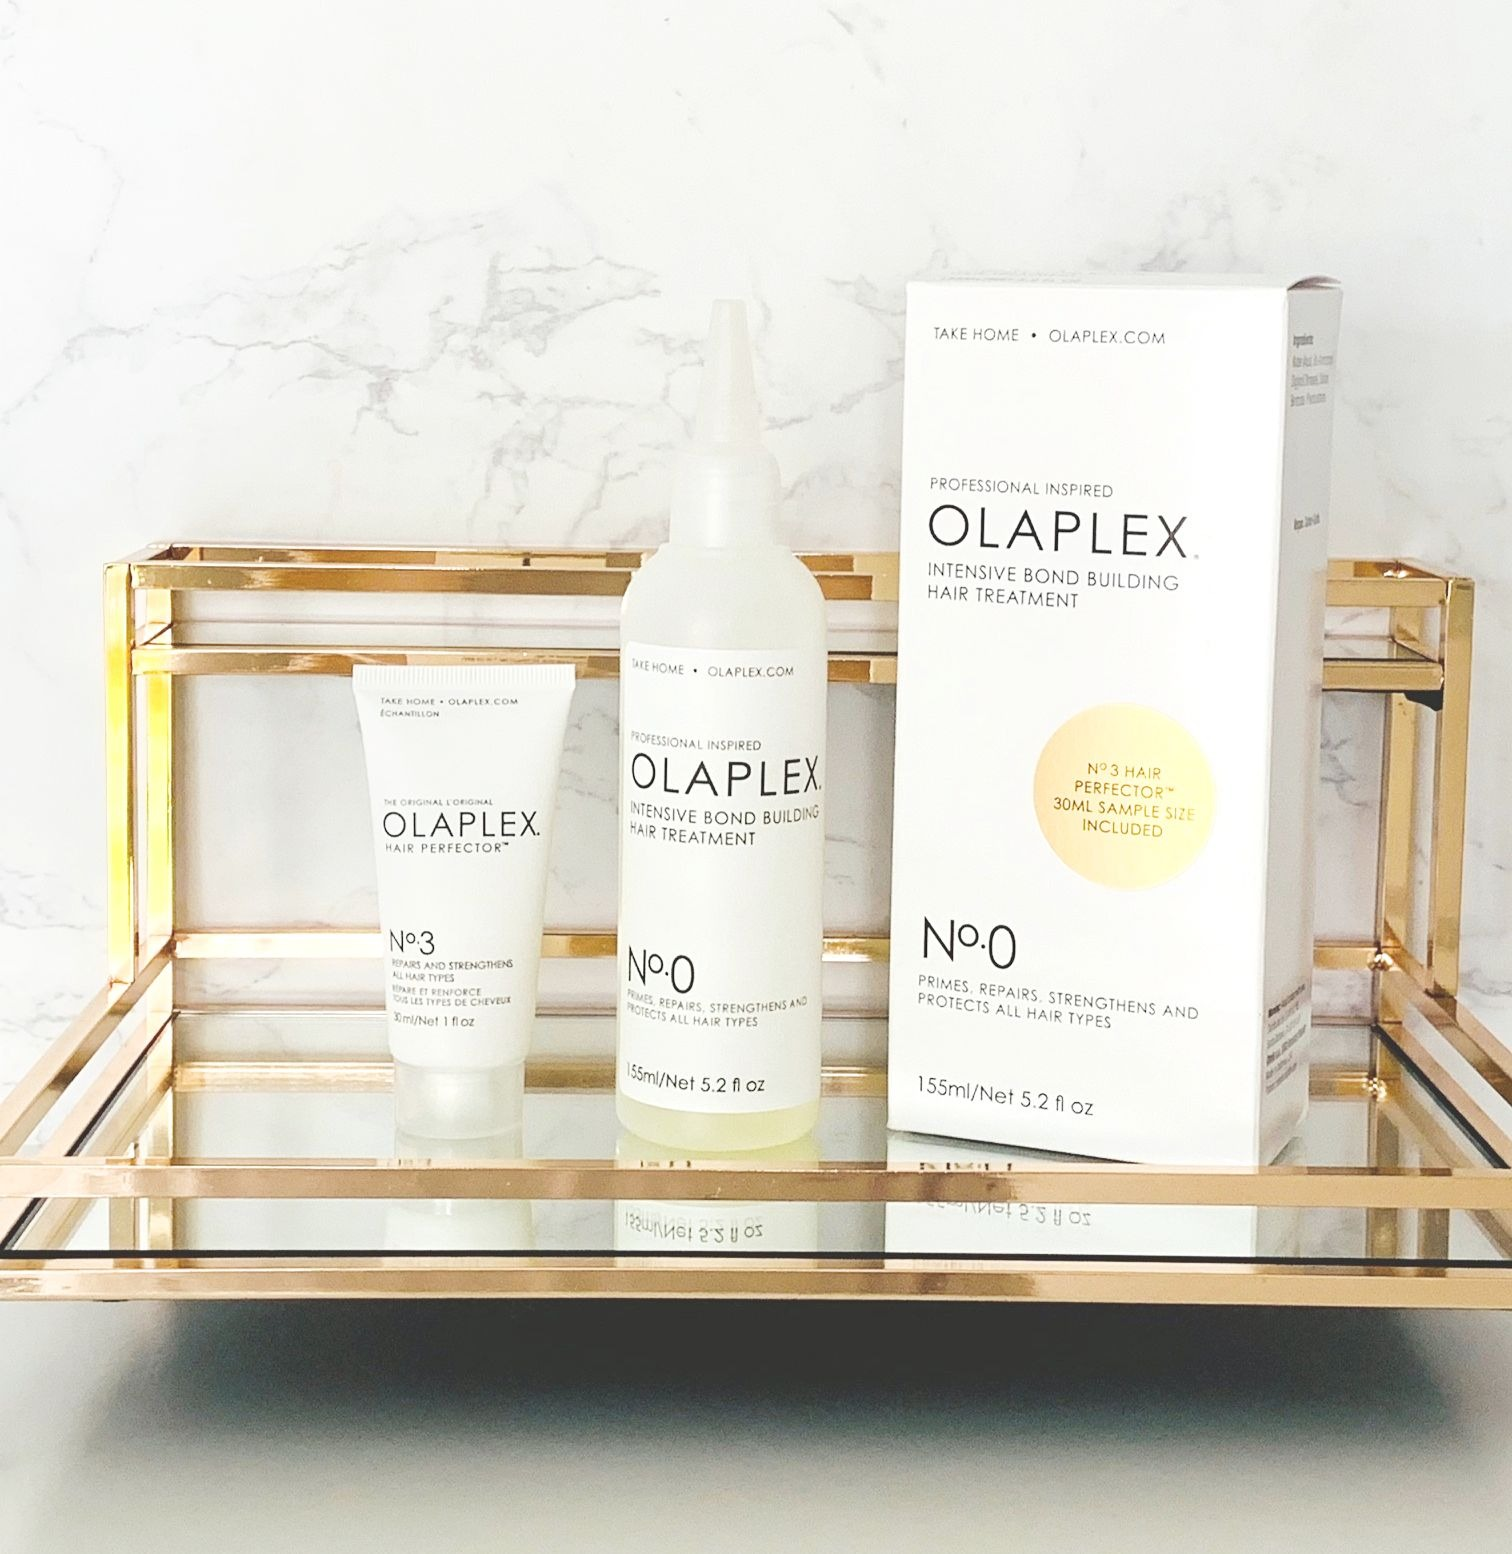 Olaplex No 0 Intensive Bond Building Kit - worth the hype?